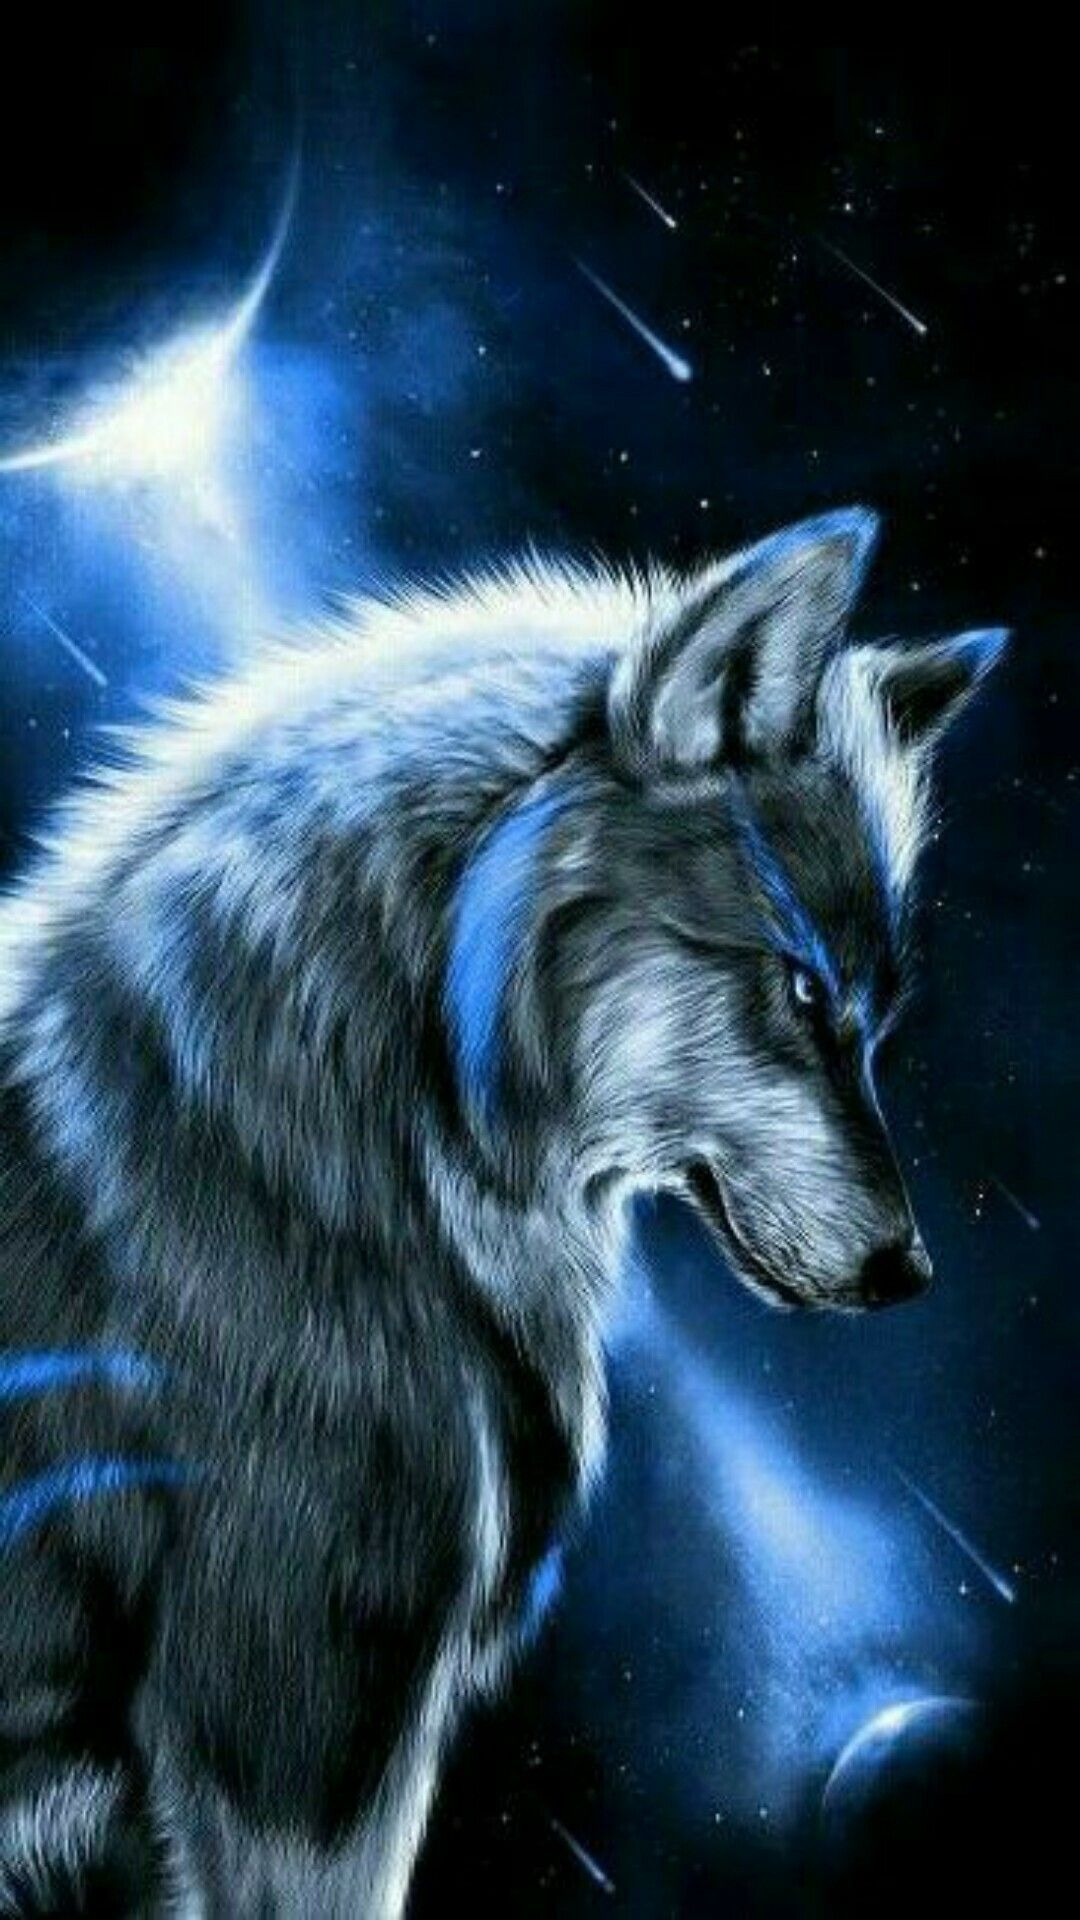 Pin By Hendie Purwiliarto On Phone Backgrounds Hipster 21 Wolf Painting Animal Wallpaper Animals